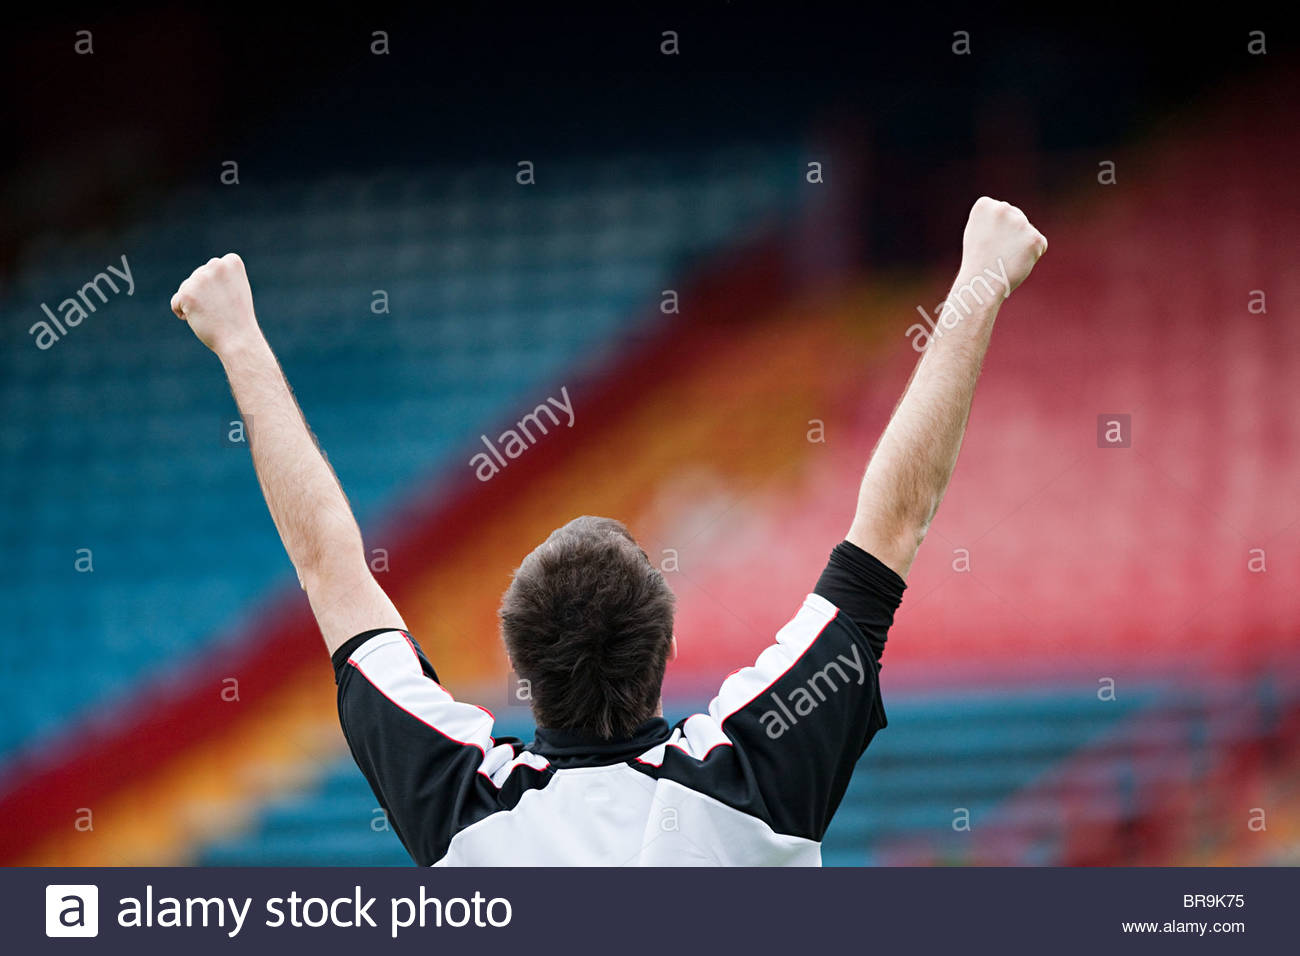 Footballer punching the air - Stock Image